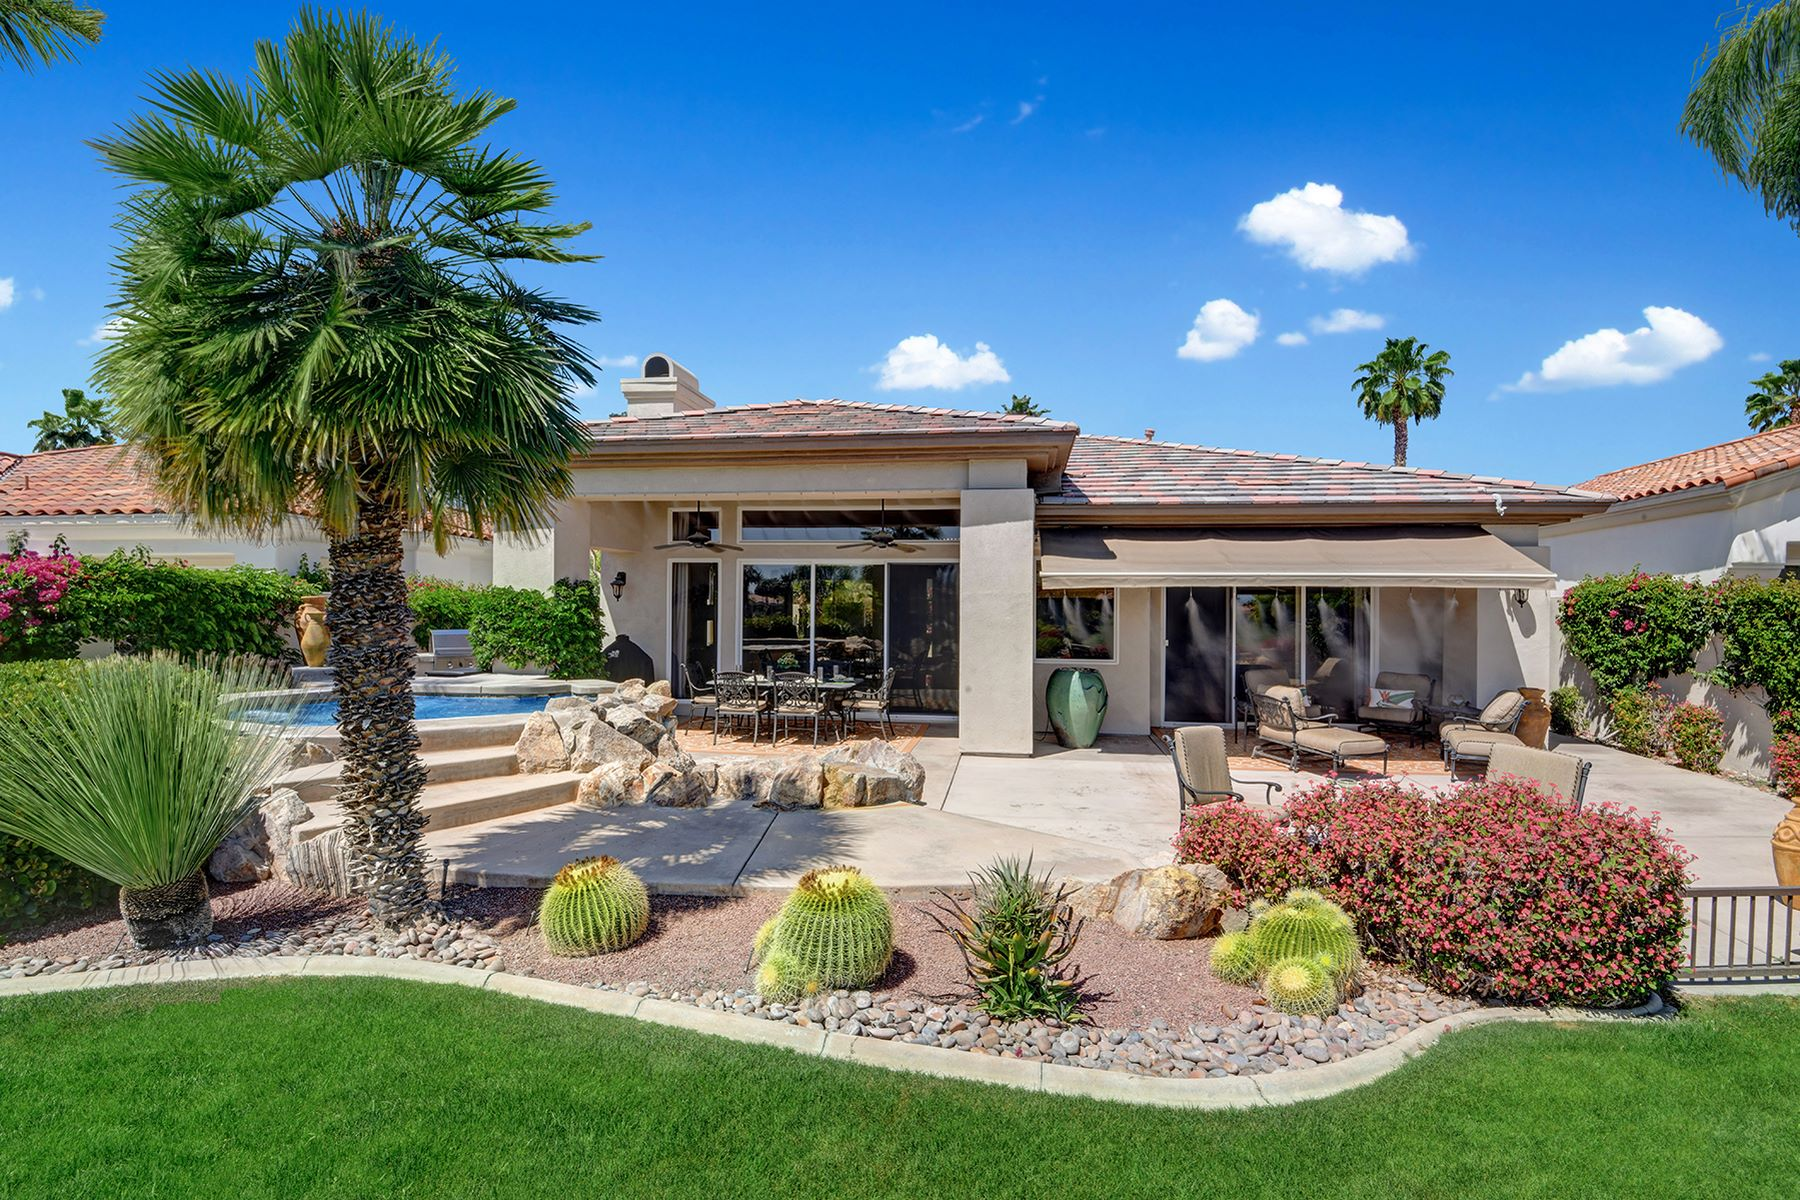 Single Family Homes for Sale at Stunning Contemporary Home in Indian Ridge 770 Snow Creek Canyon Palm Desert, California 92211 United States